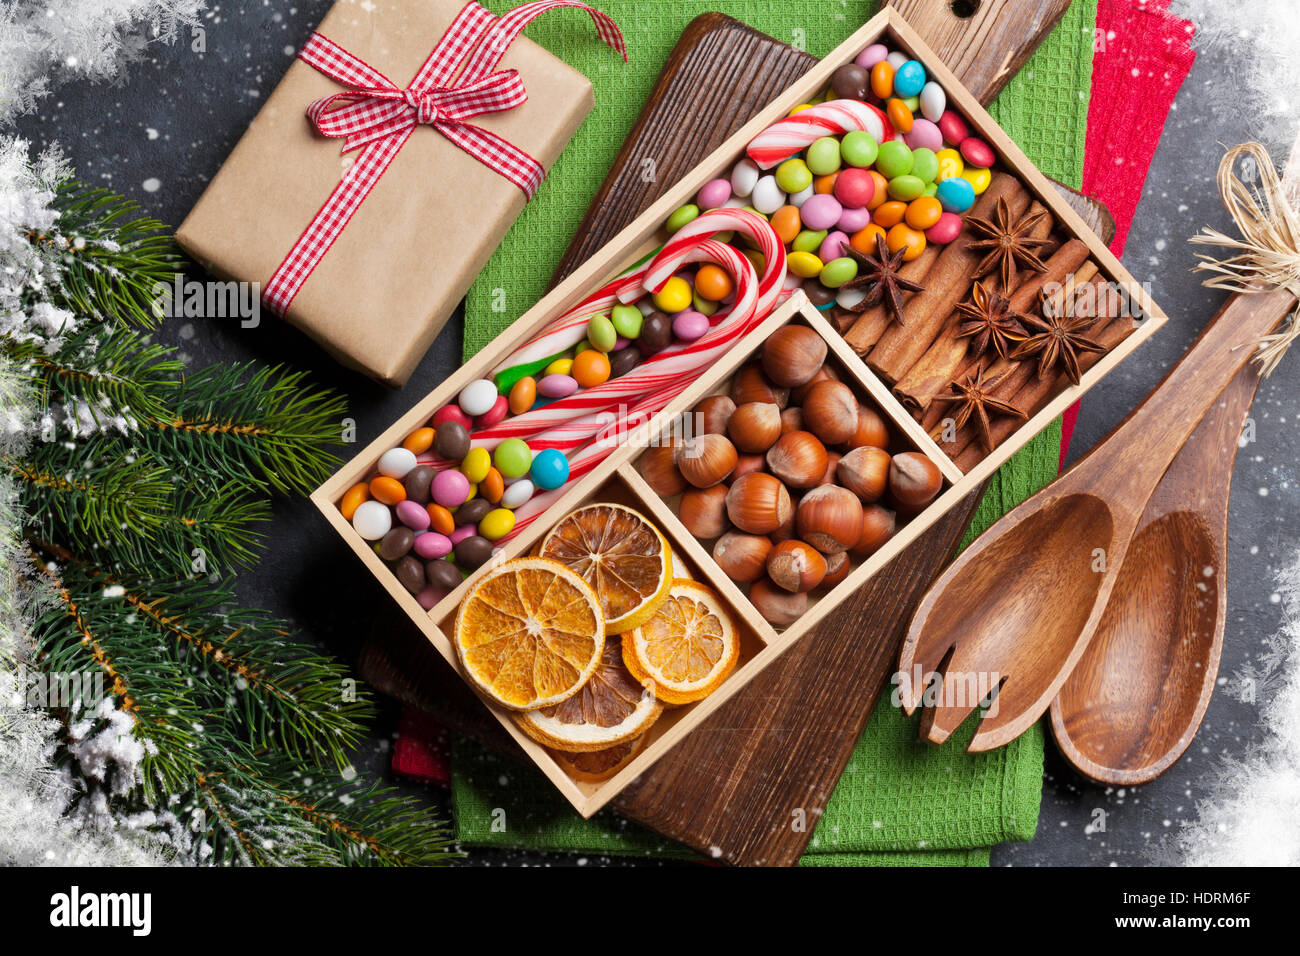 Christmas food decor and gift box. Xmas cooking table and fir tree ...